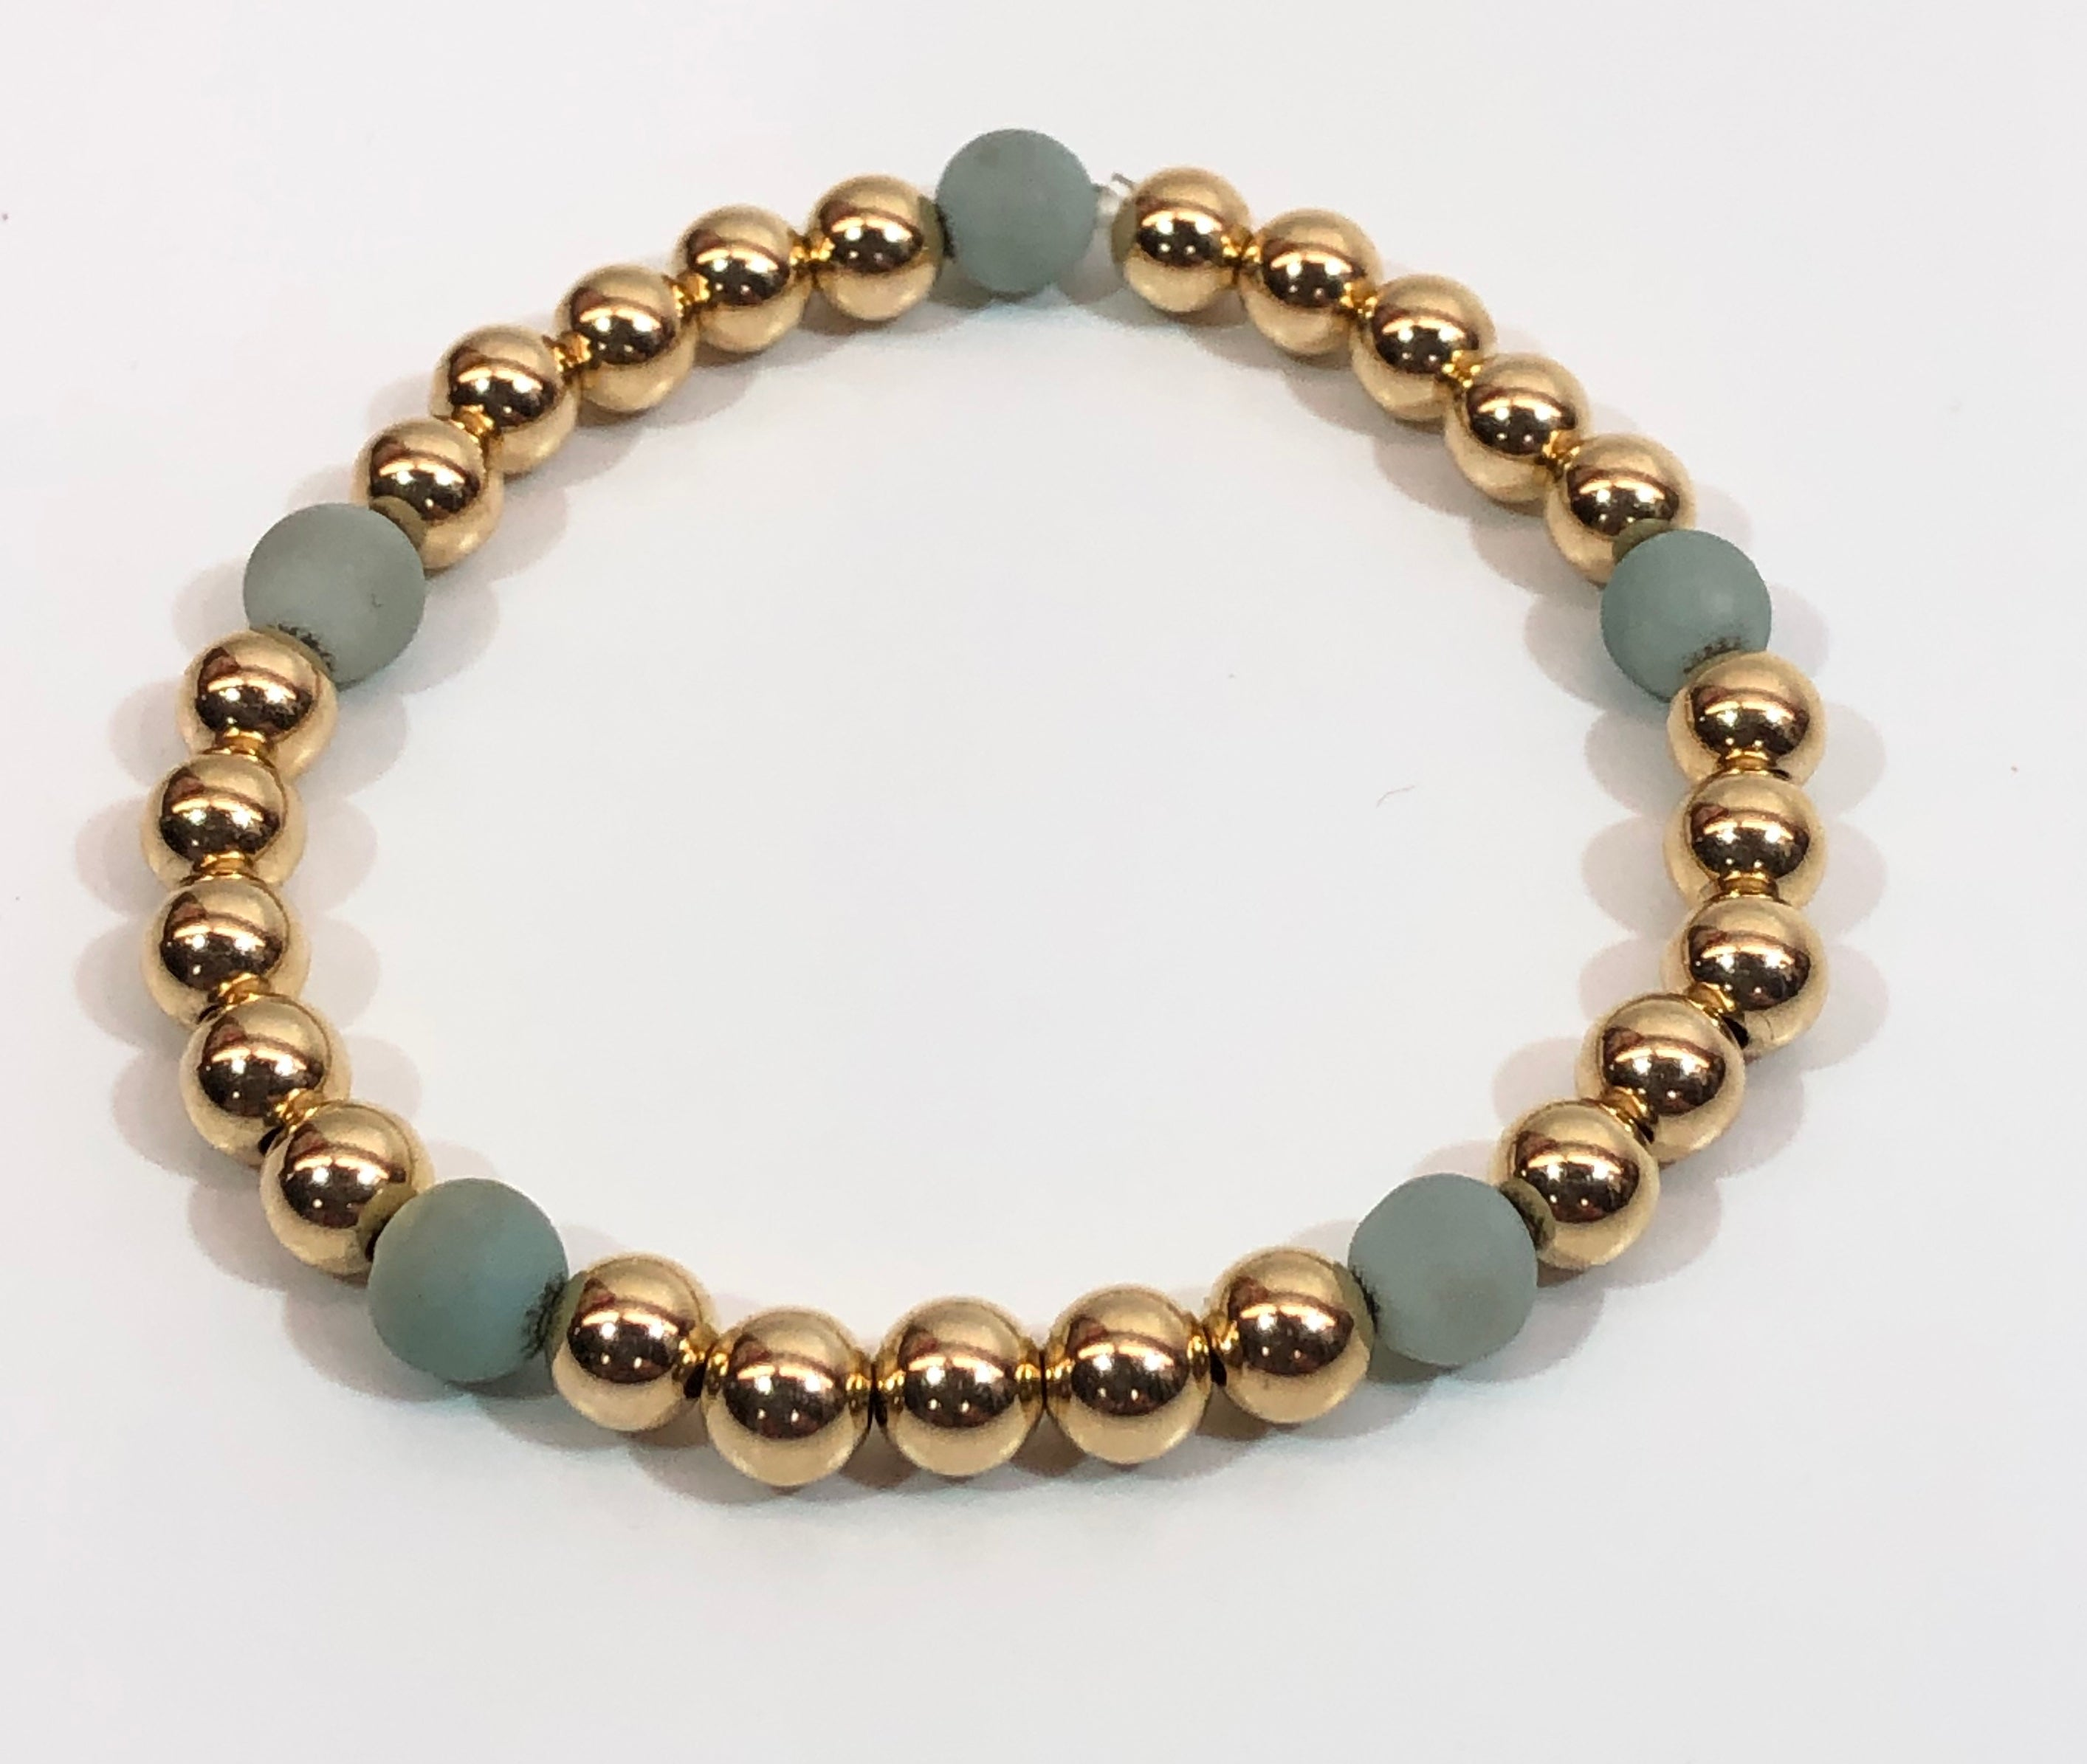 6mm 14kt Gold Filled Bead Bracelet with 5 Light Green Amazonite Beads